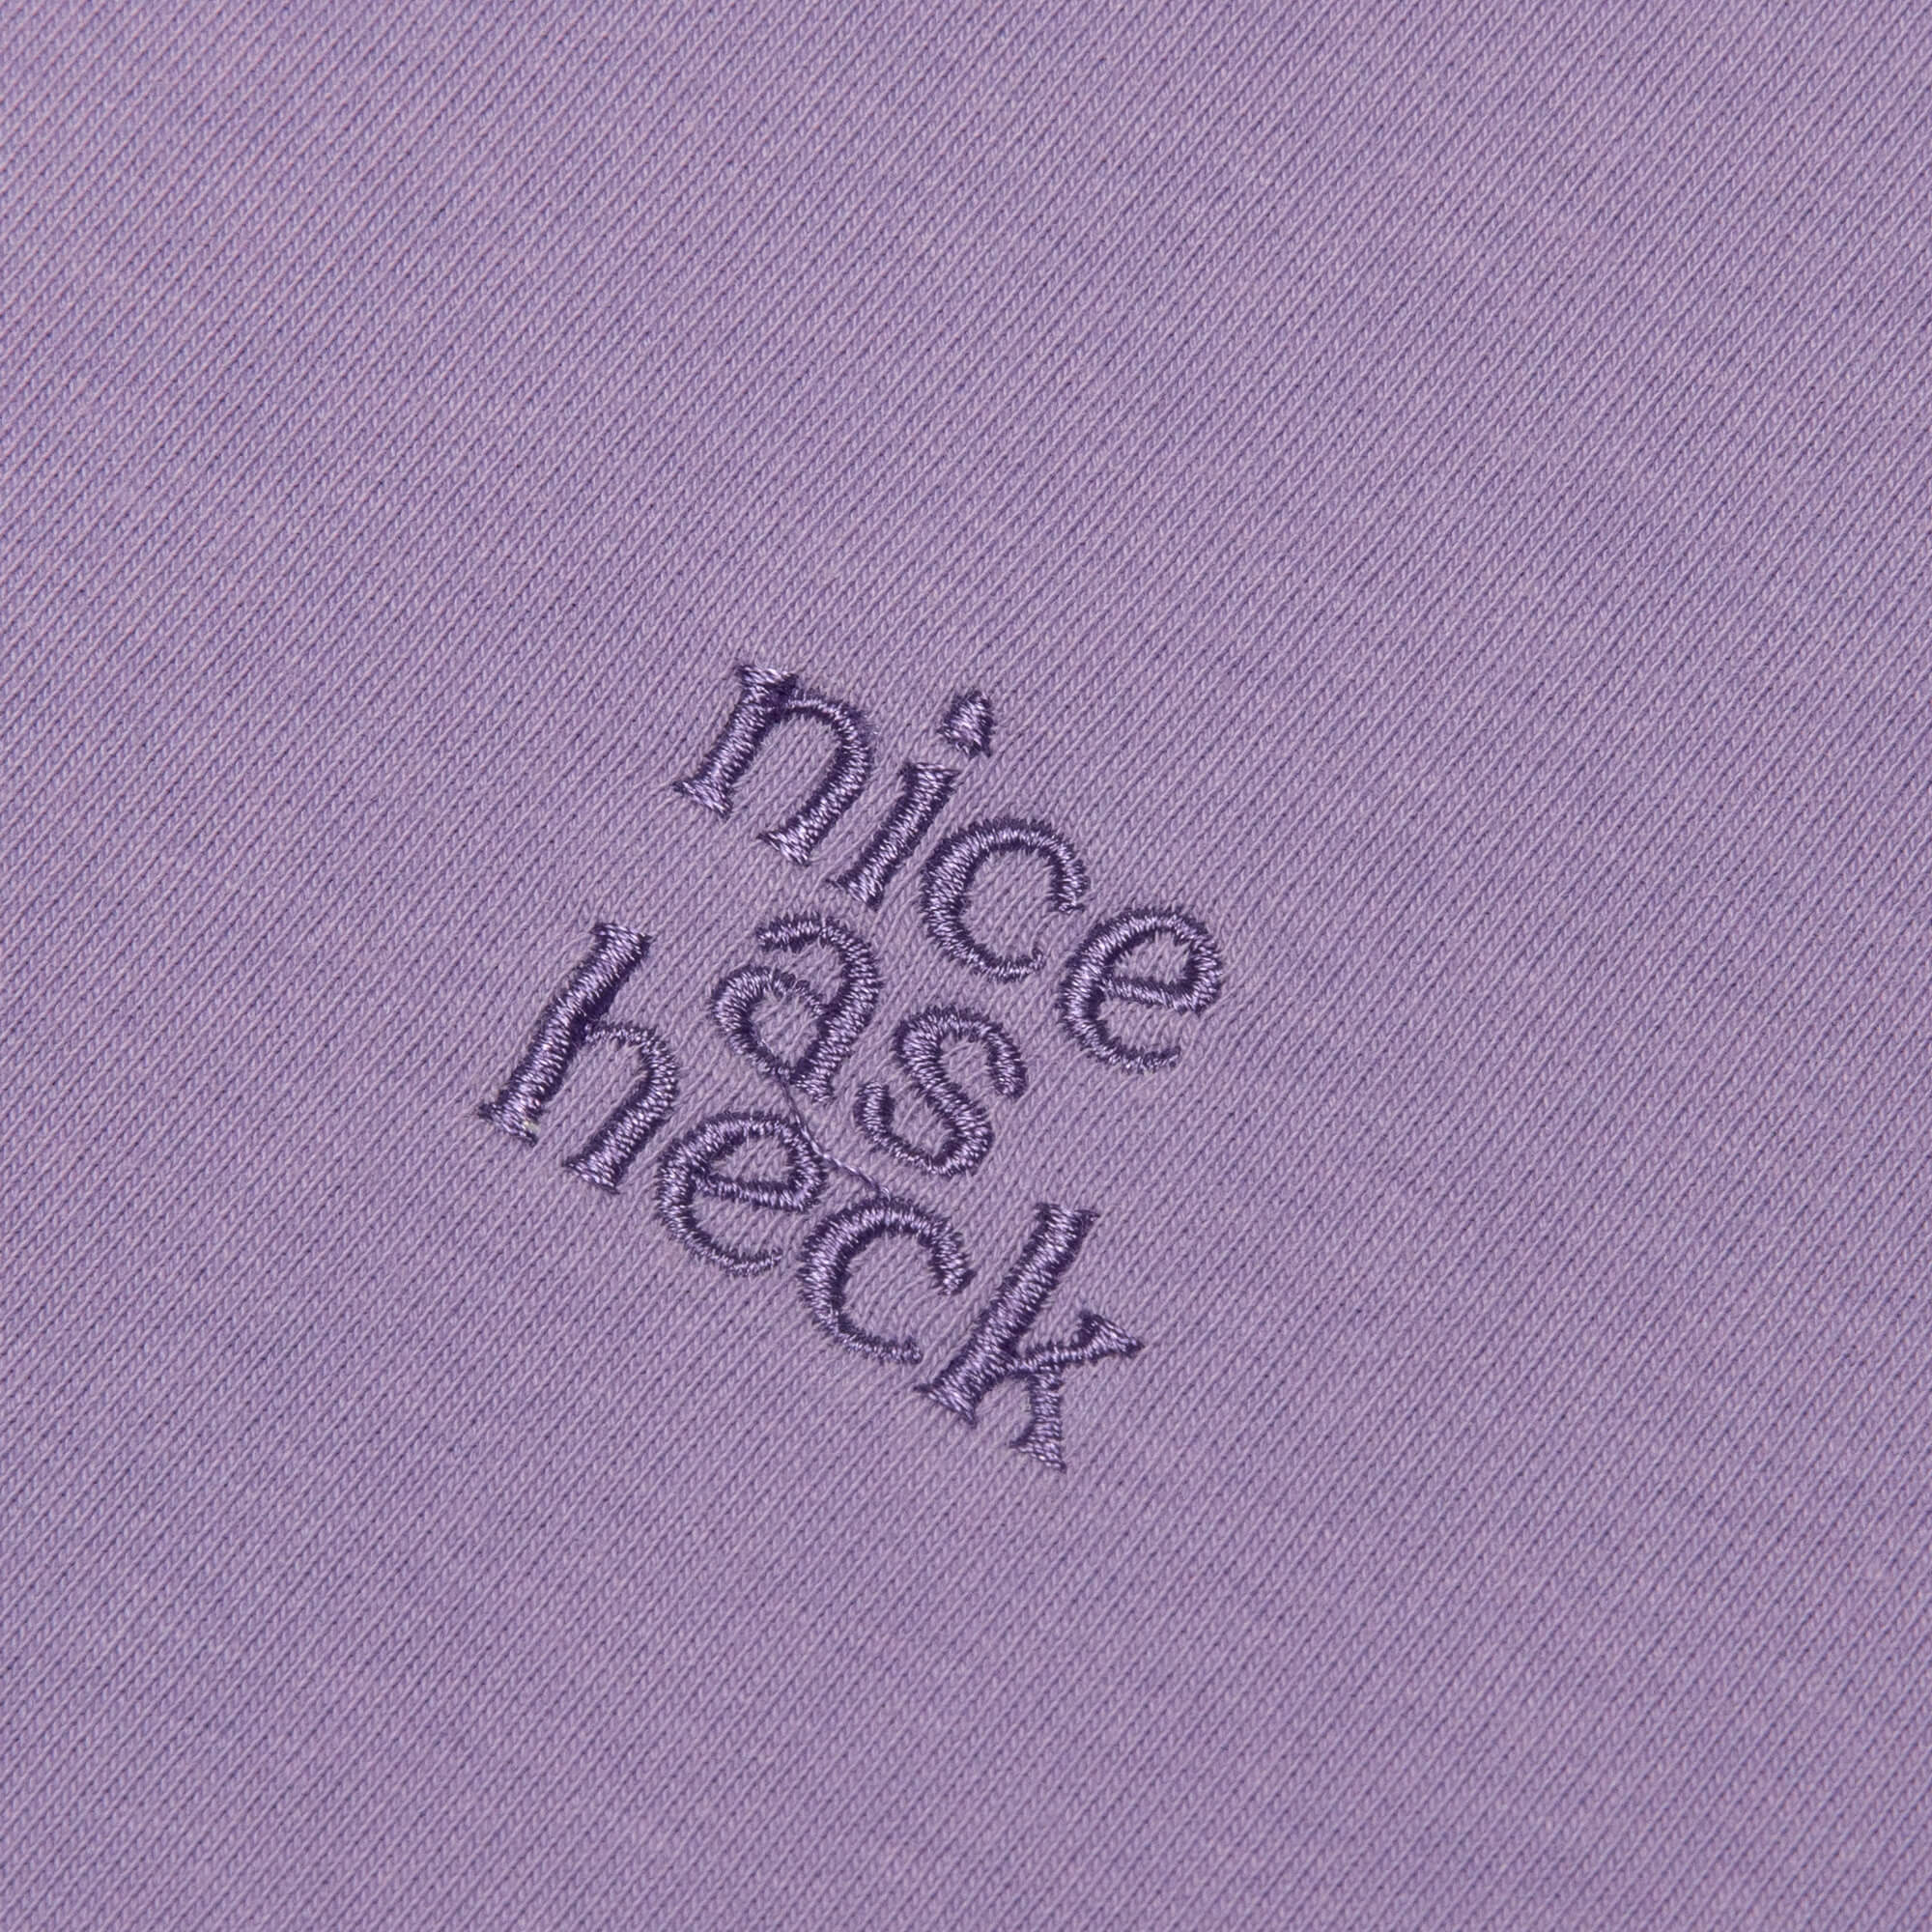 close up photo of the nice as heck logo on the purple weekender tee